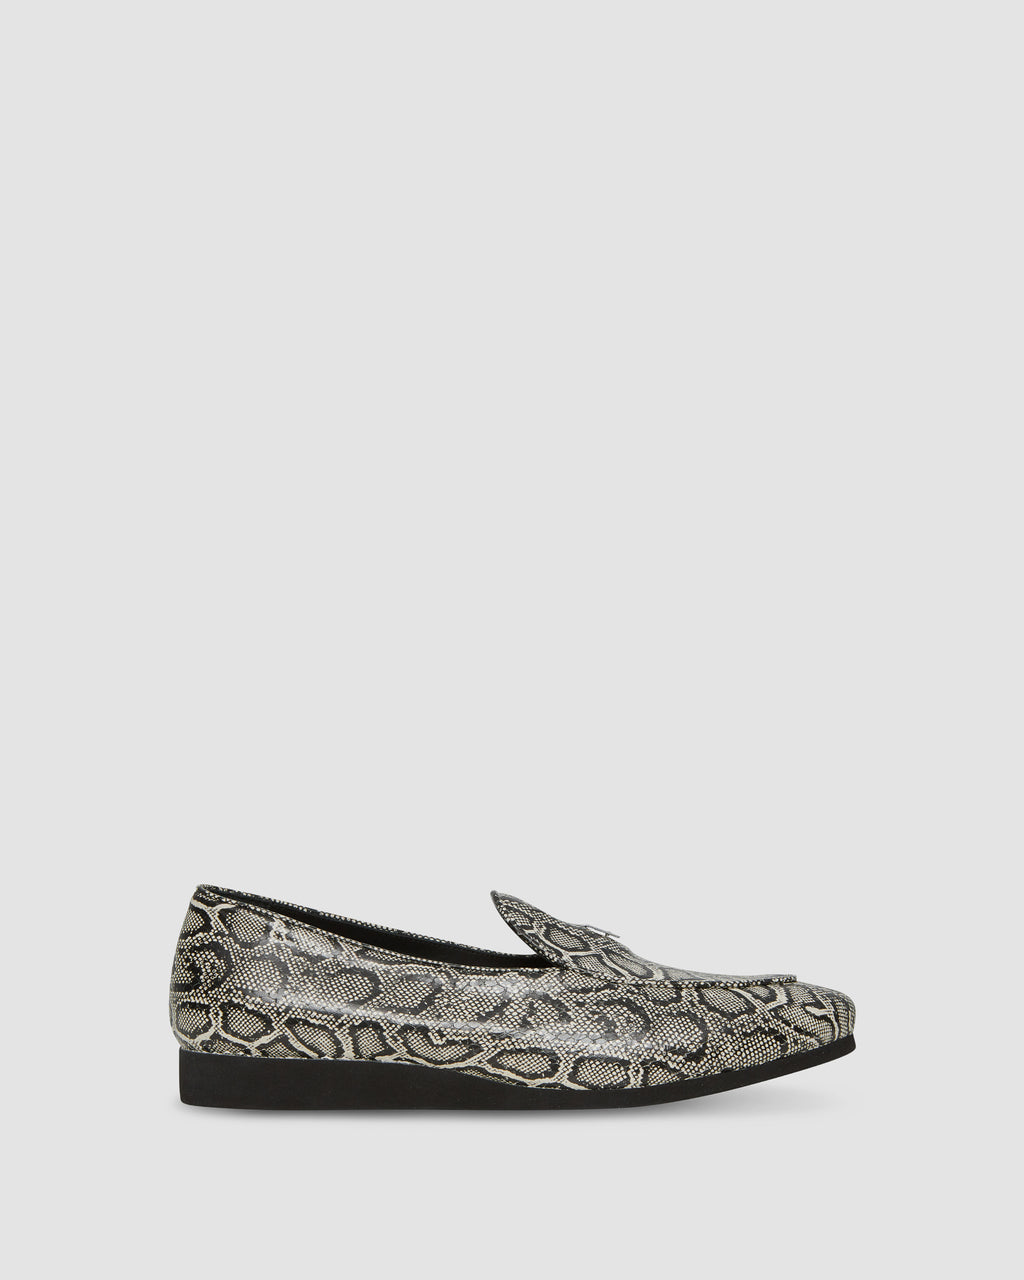 ST. MARKS LOAFER